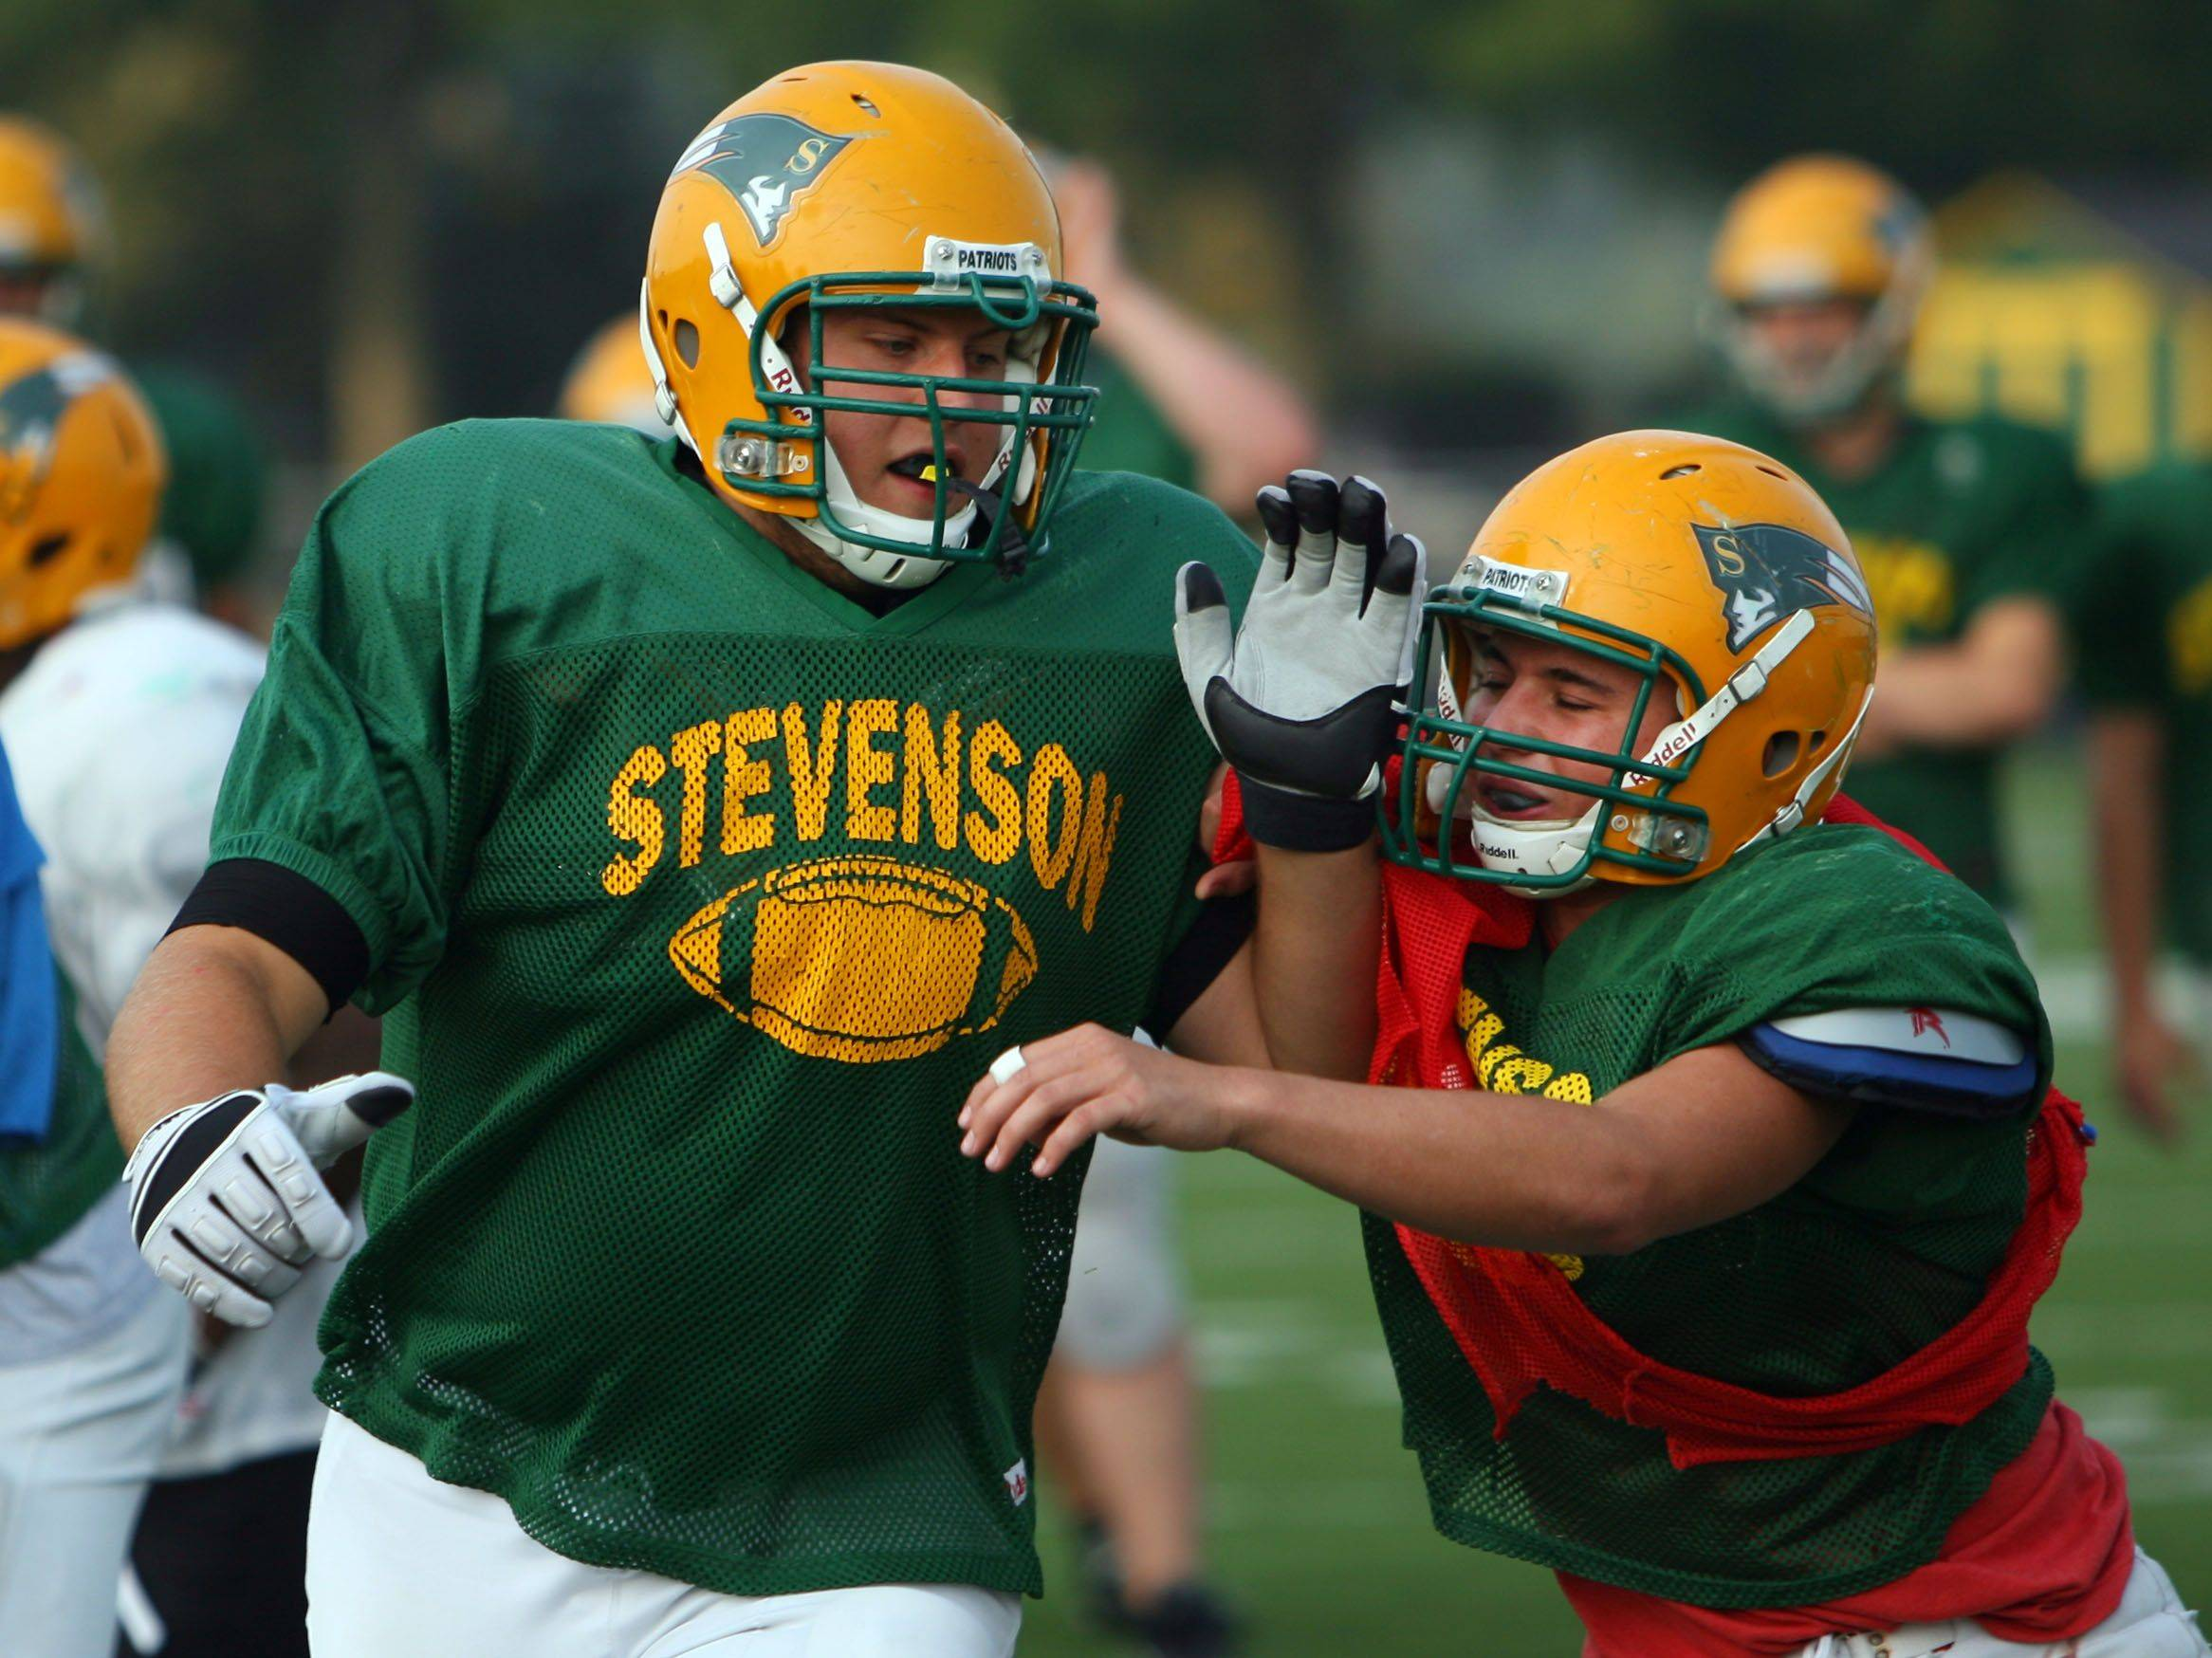 Stevenson senior offensive tackle Jake Hurcombe goes through practice Tuesday in Lincolnshire. Hurcombe has committed to Eastern Michigan.